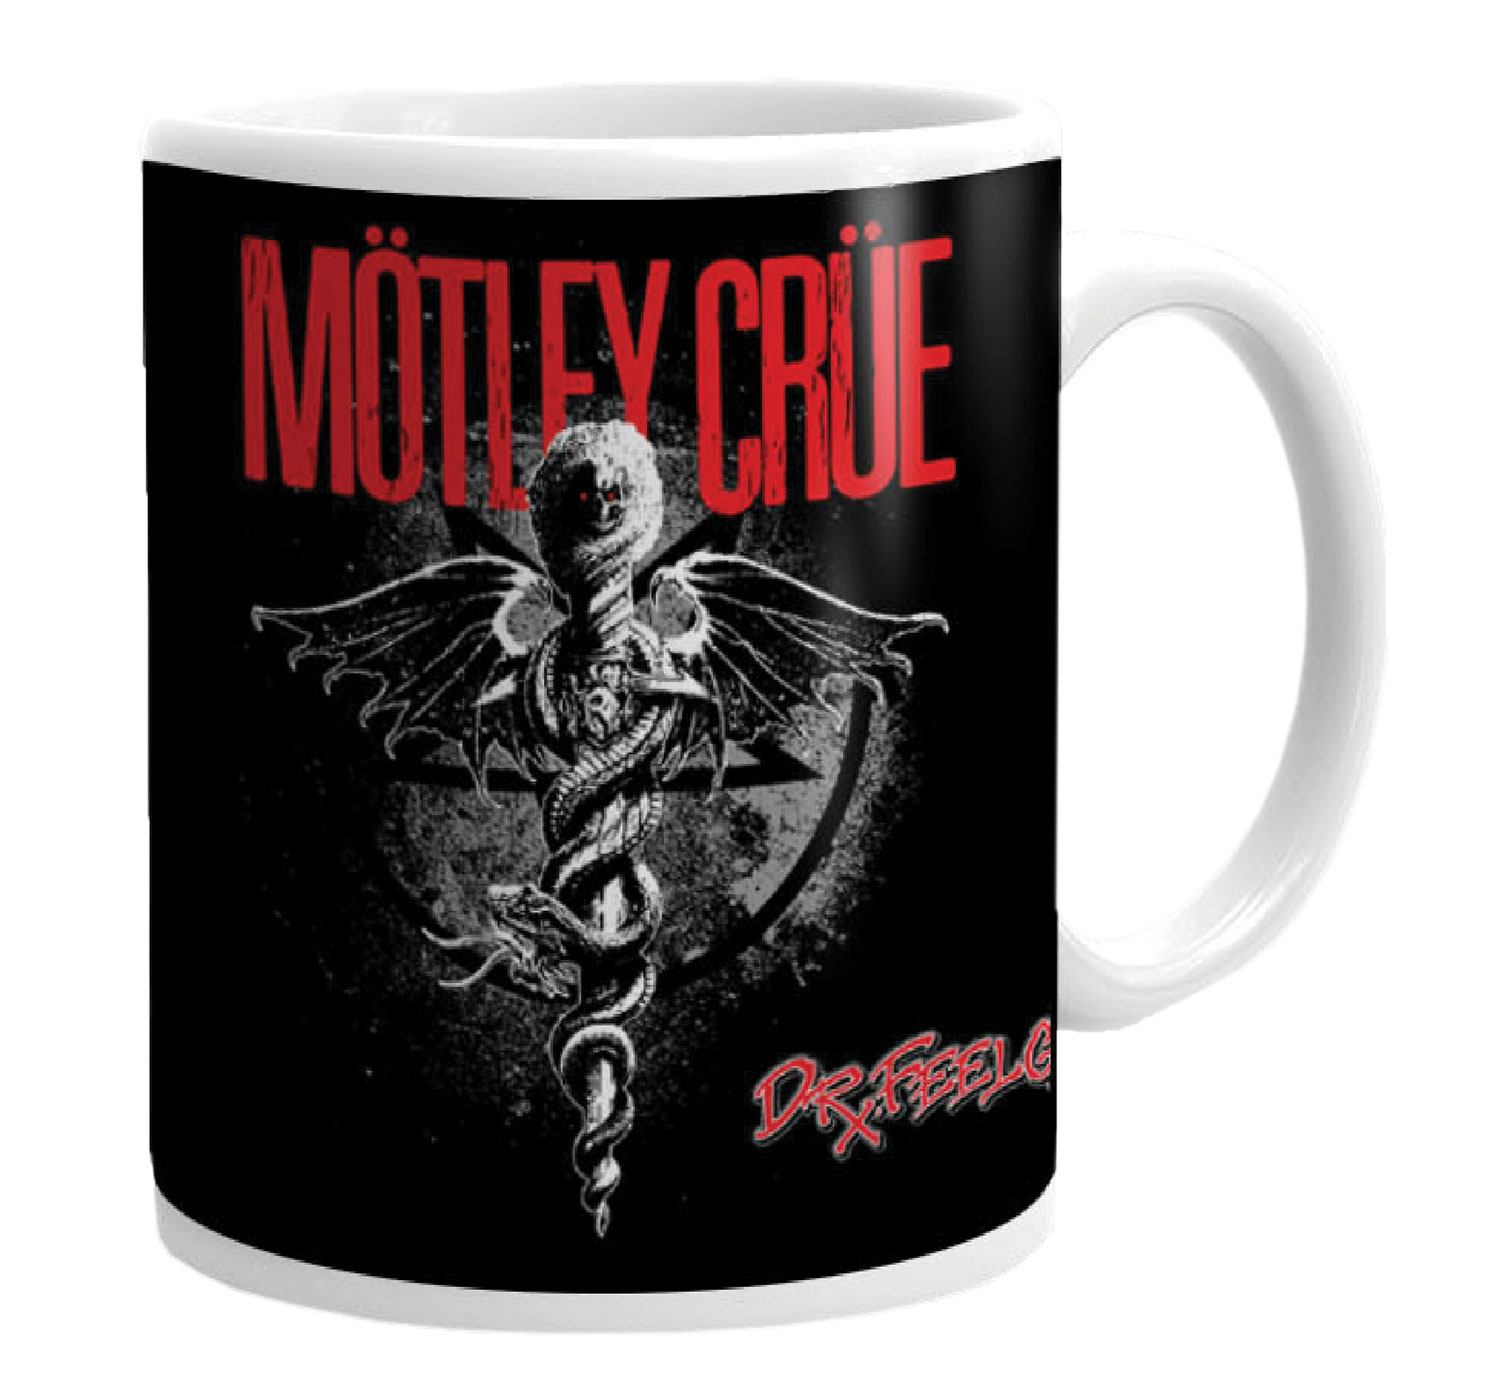 Mötley Crüe Mug Dr. Feelgood